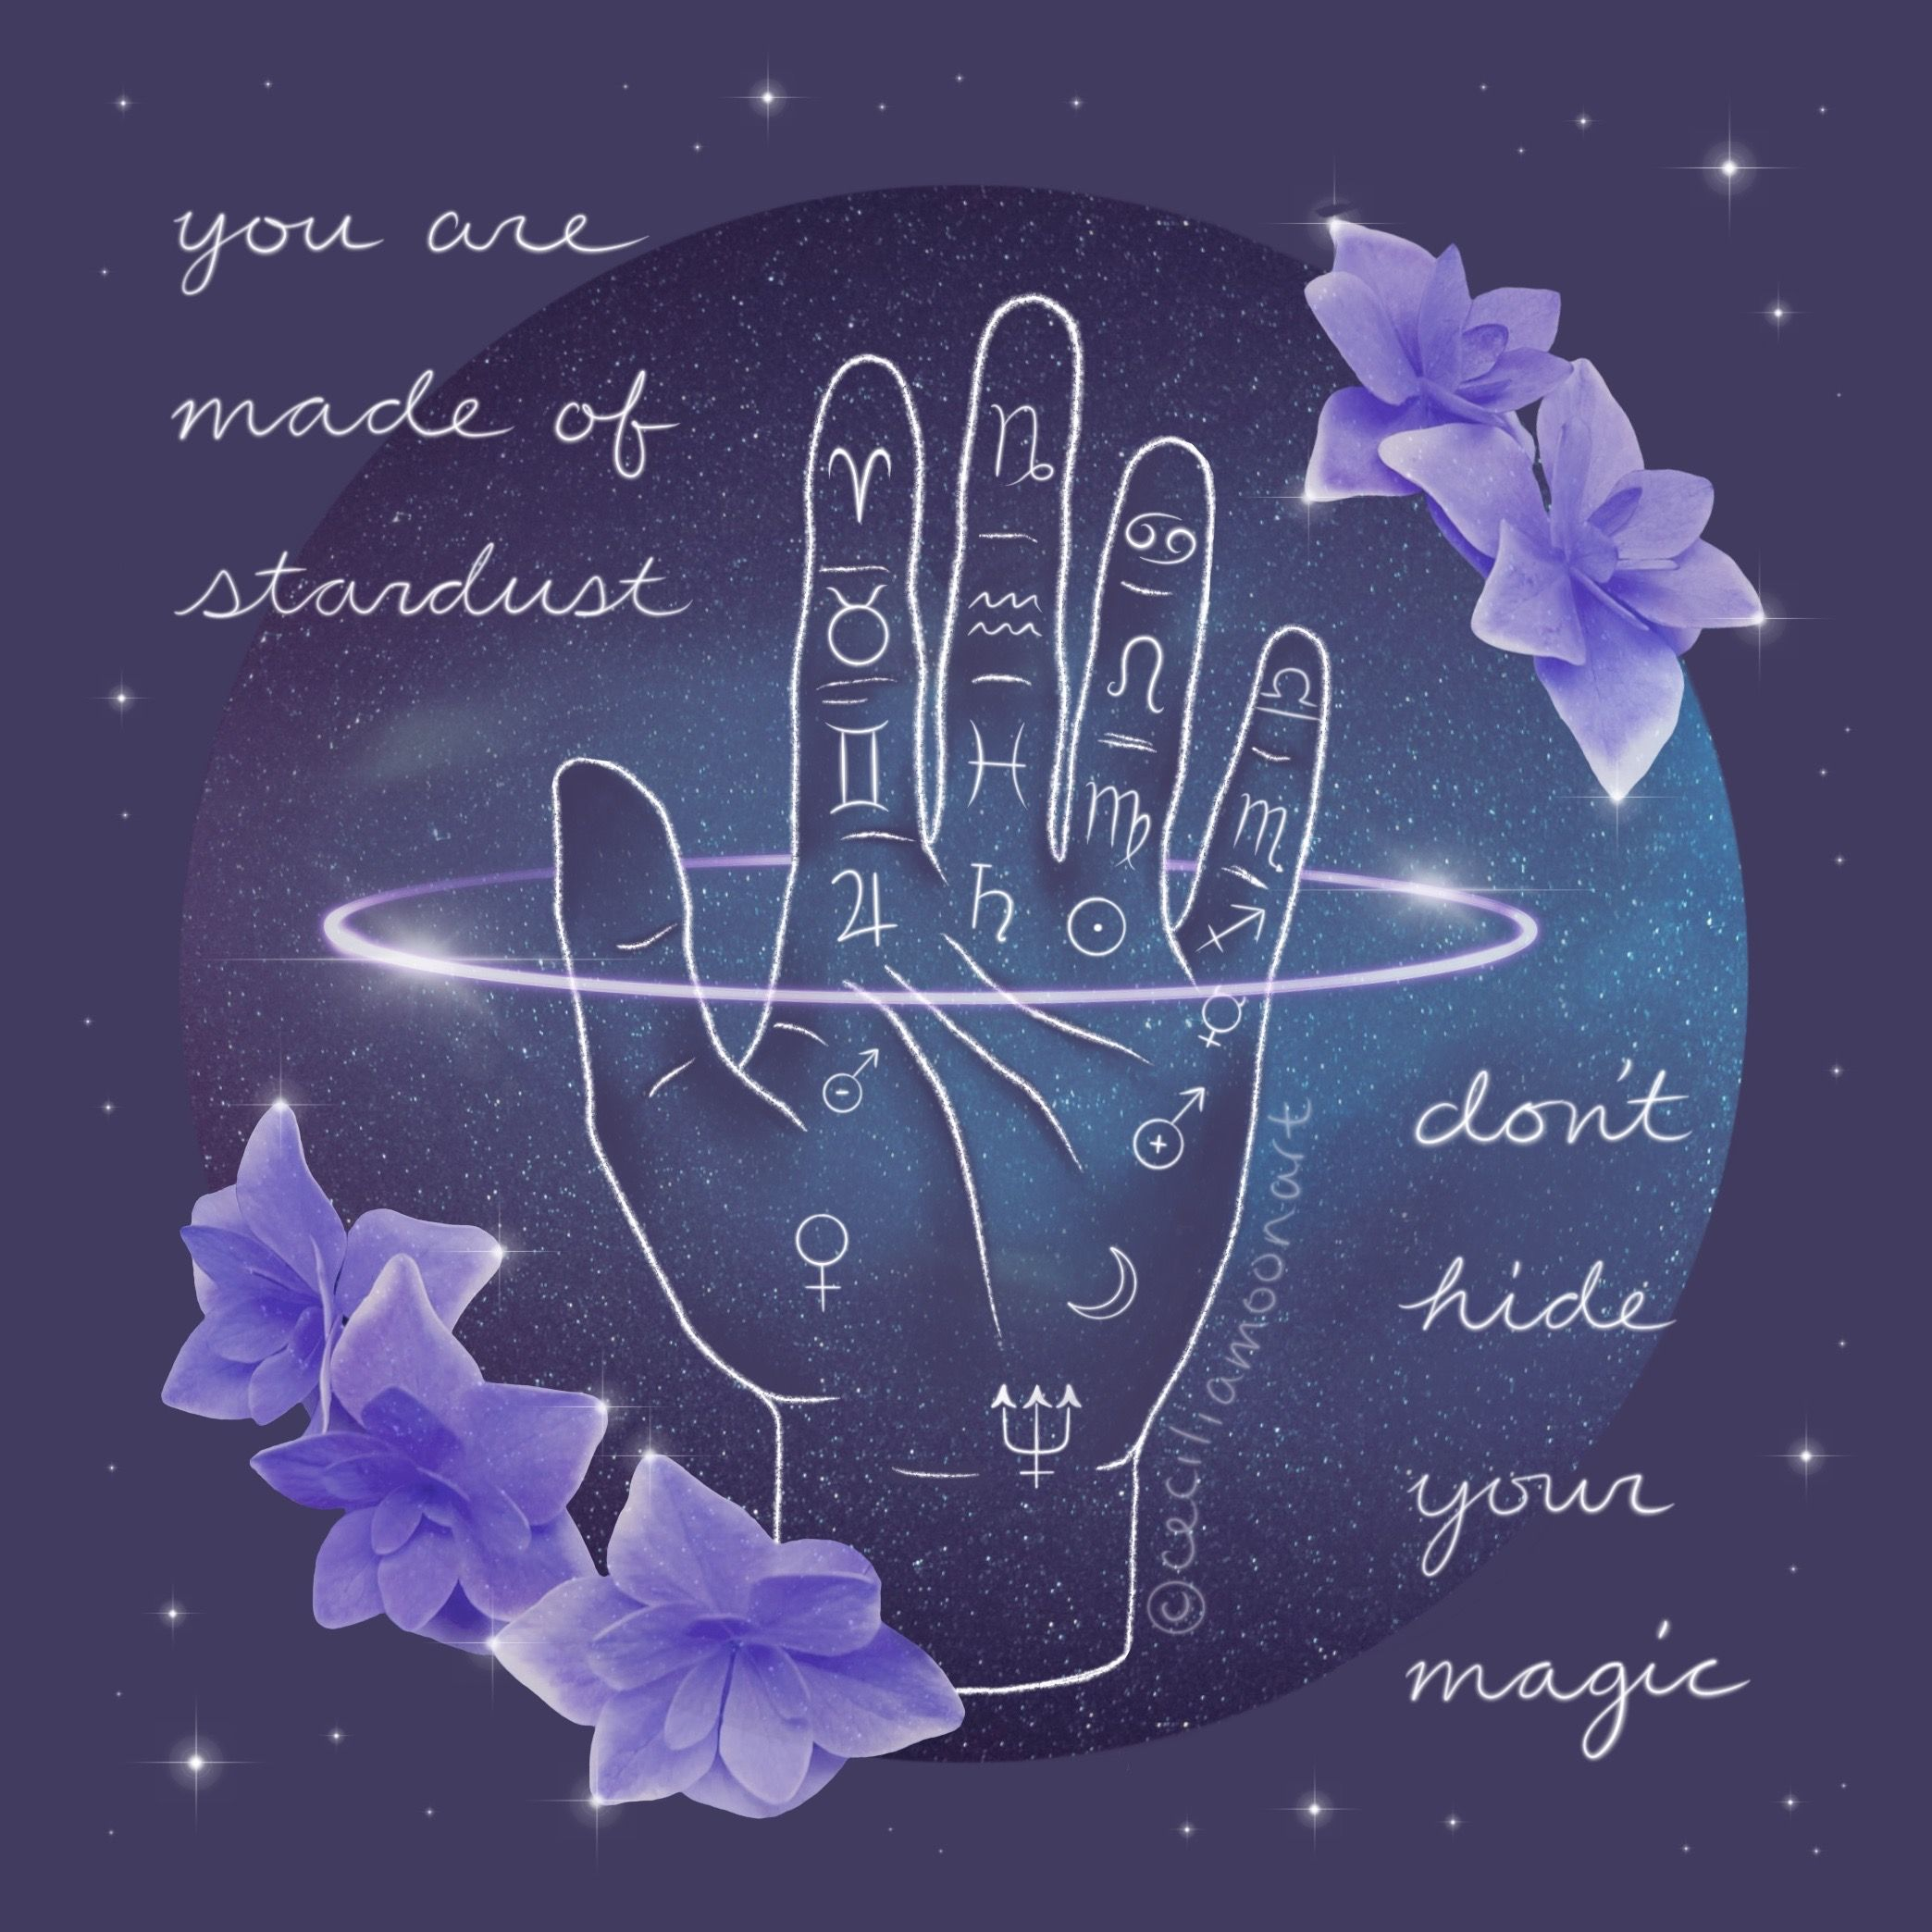 Celestial Palmistry Hand Astrology Art with Empowering Spiritual Quote